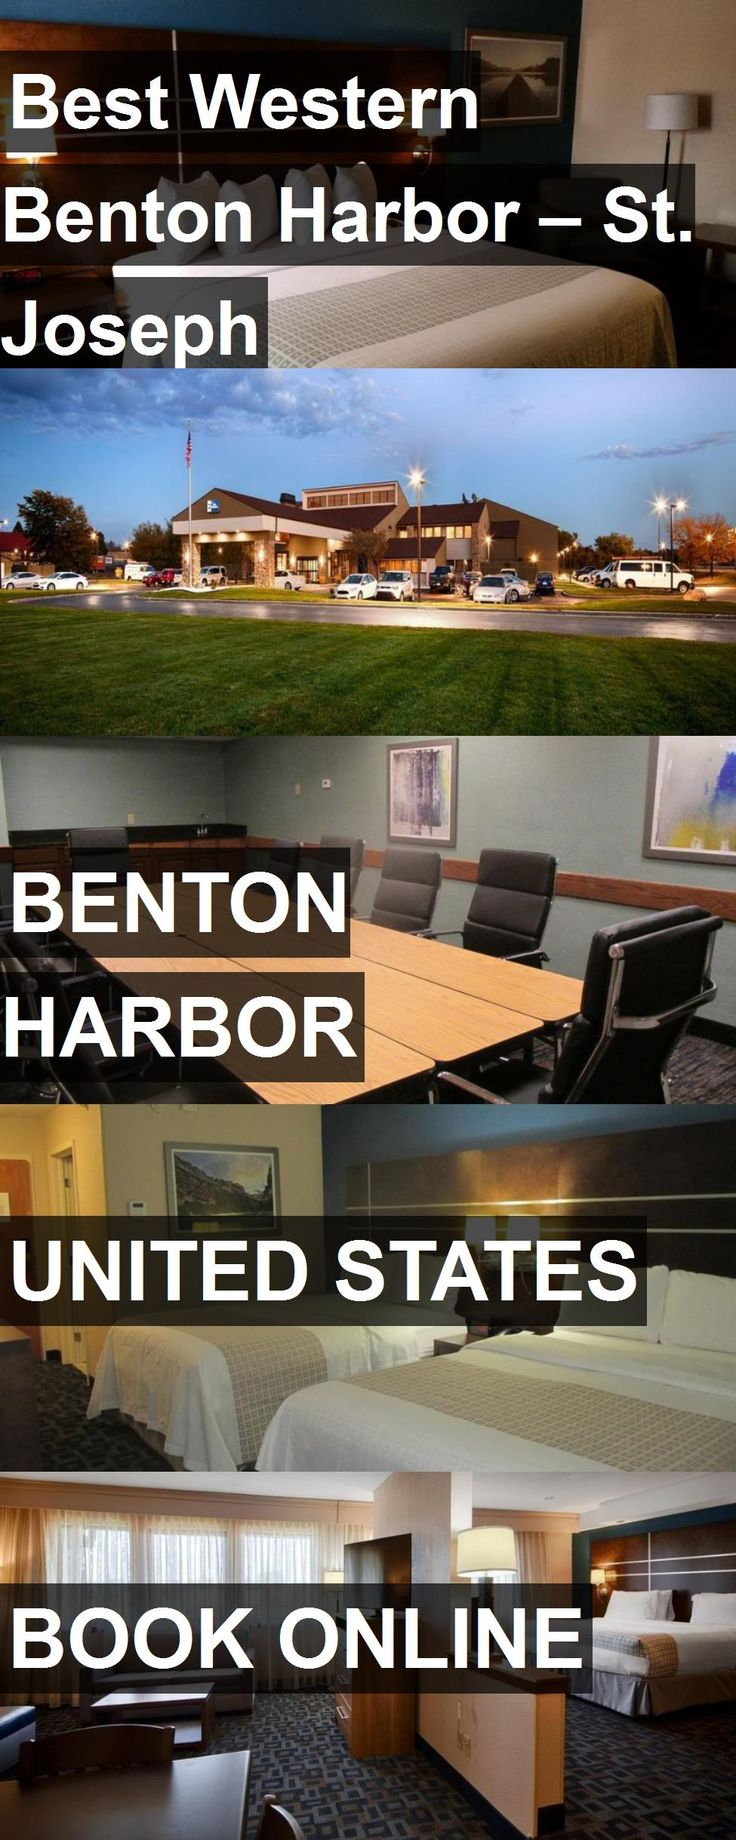 Hotel Best Western Benton Harbor – St. Joseph in Benton Harbor, United States. For more information, photos, reviews and best prices please follow the link. #UnitedStates #BentonHarbor #travel #vacation #hotel